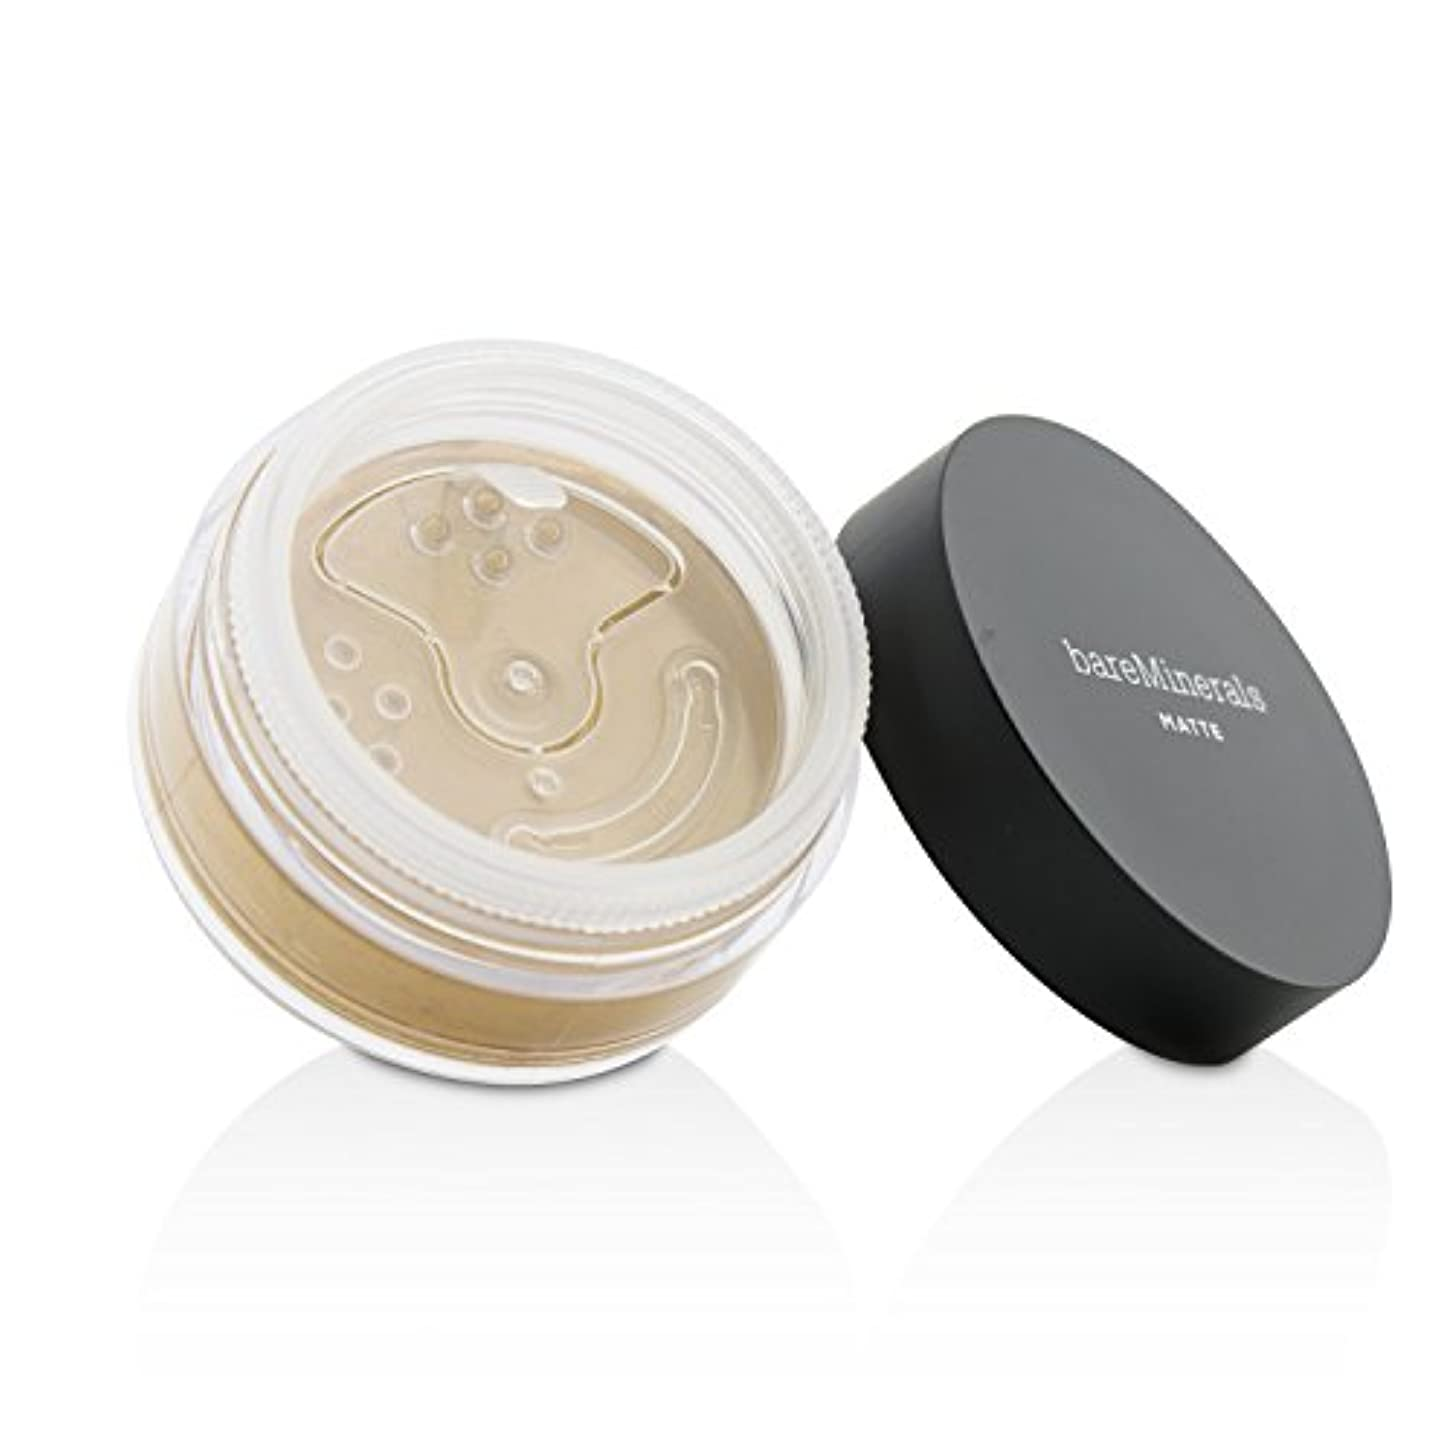 パンダ慰め建てるベアミネラル BareMinerals Matte Foundation Broad Spectrum SPF15 - Tan Nude 6g/0.21oz並行輸入品